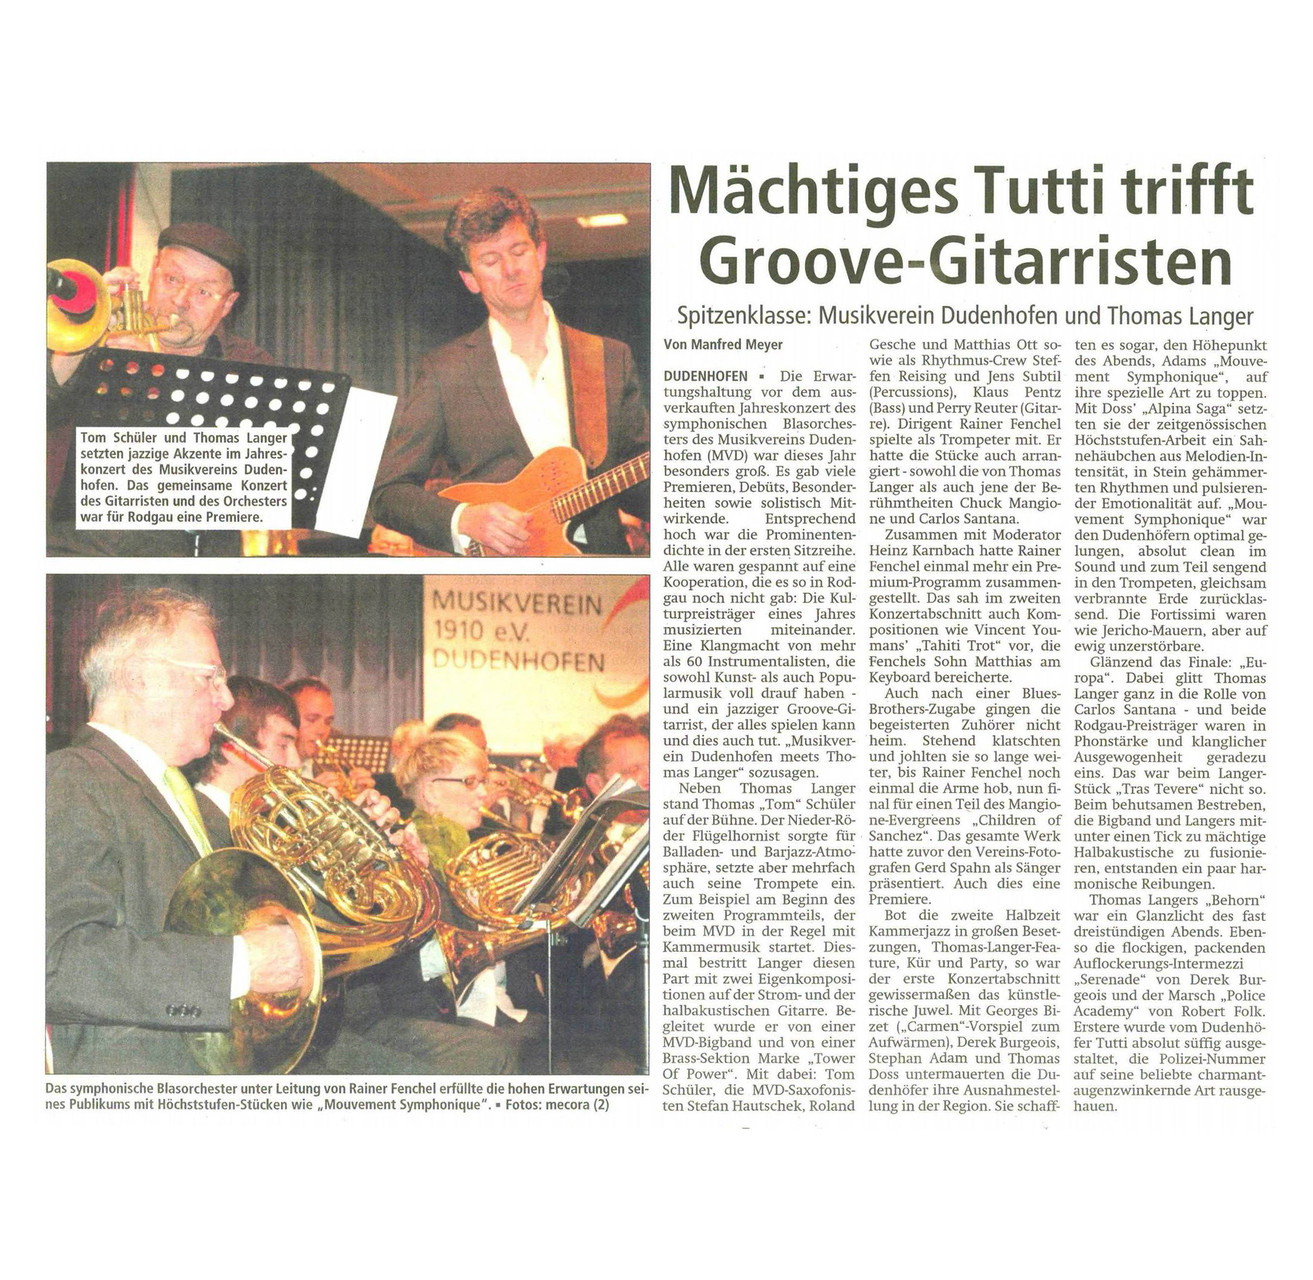 Offenbach Post, 25. November 2014